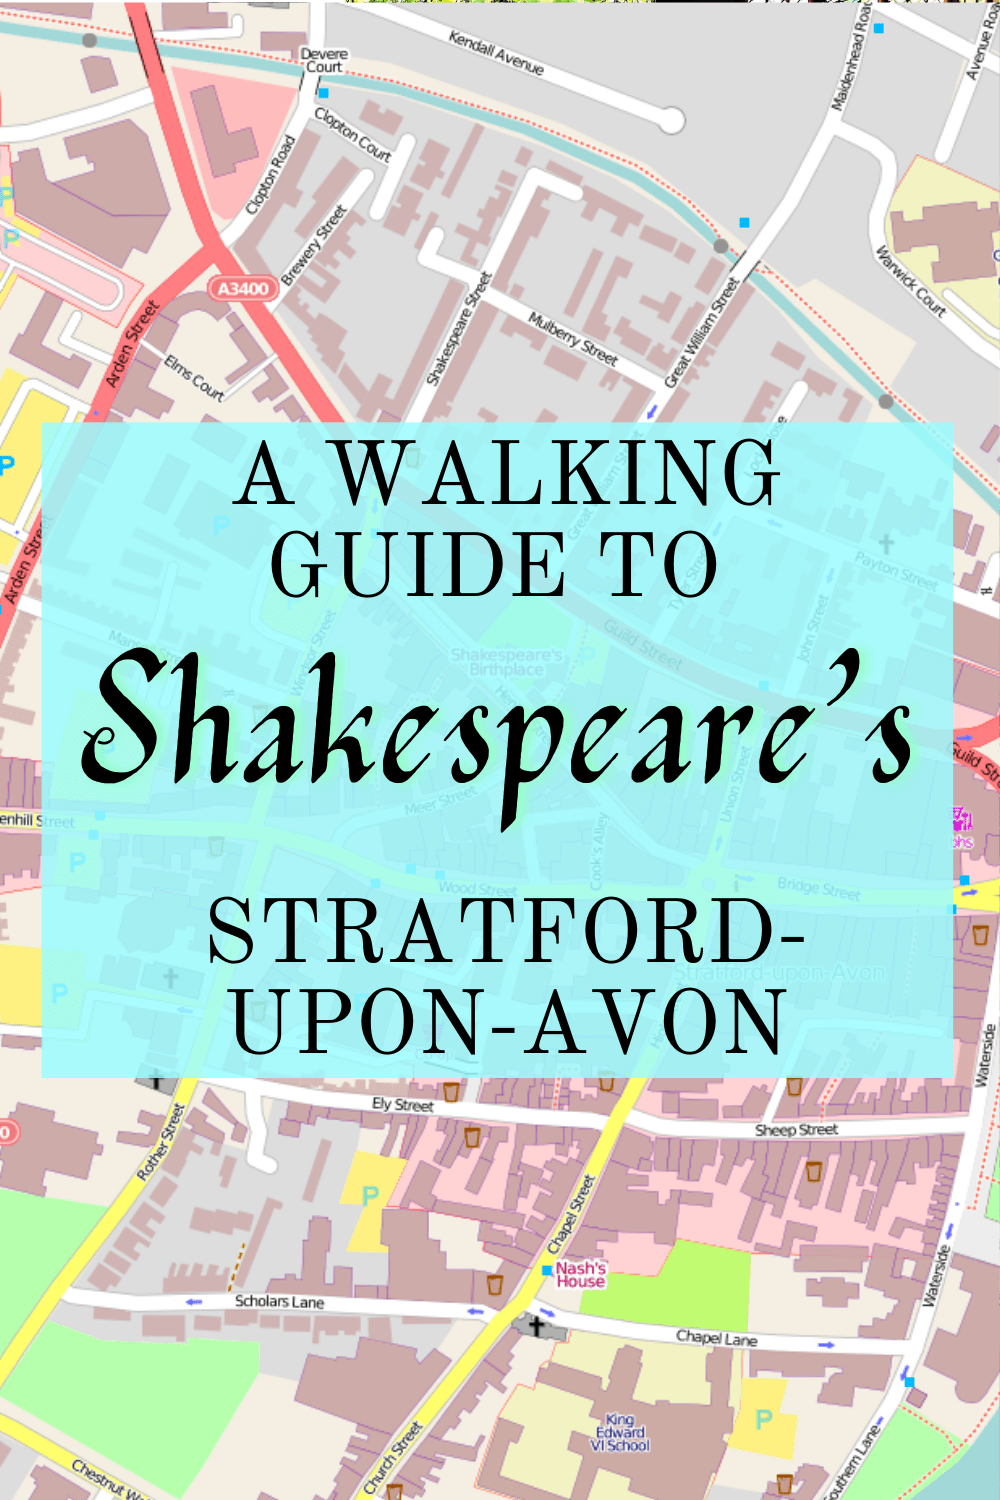 A Walking Guide to Shakespeare's Stratford-upon-Avon